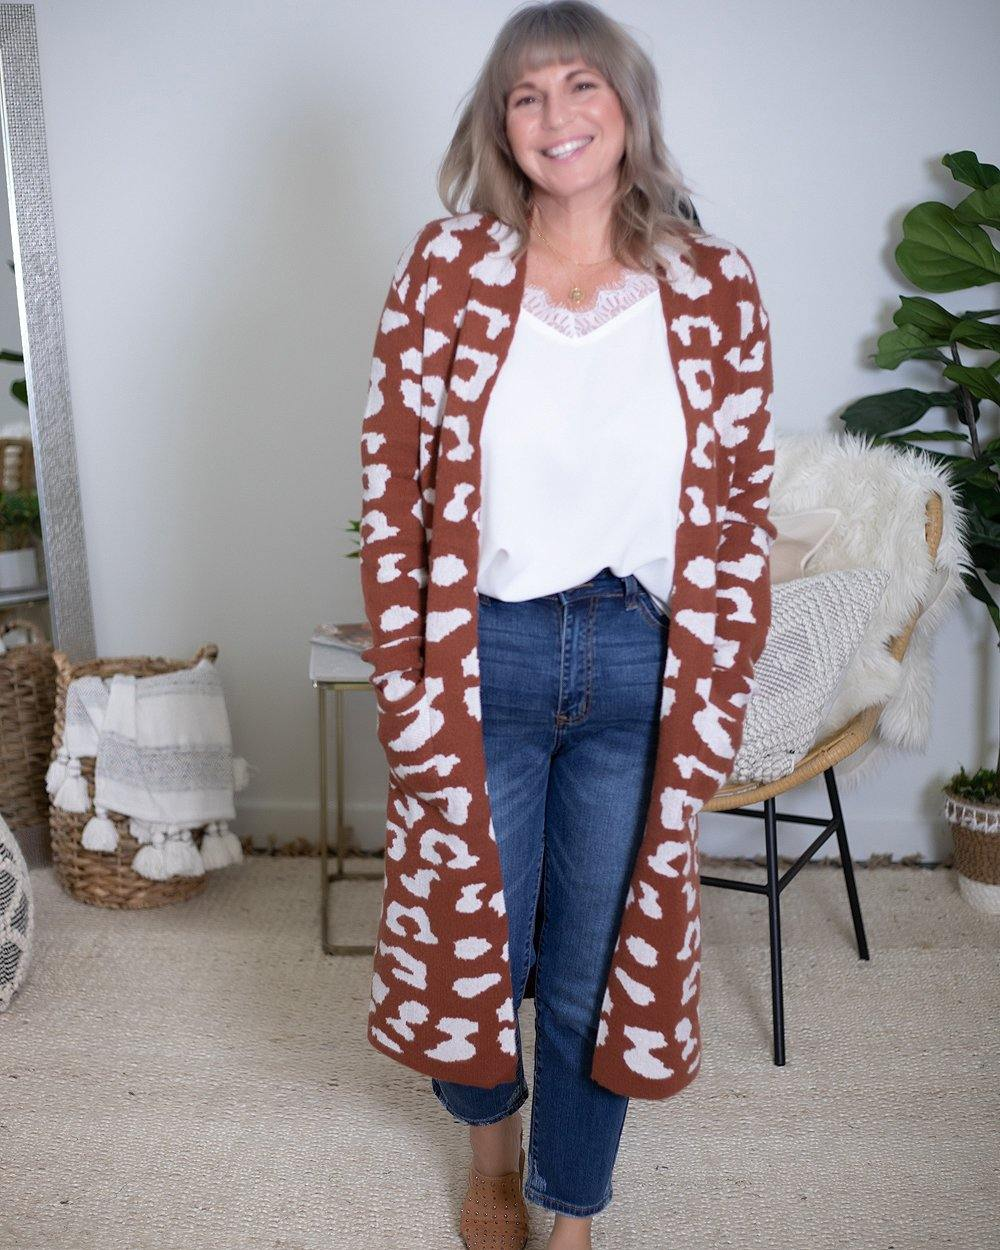 Leopard Print Cardigan - The Local Women's Boutique Clothing